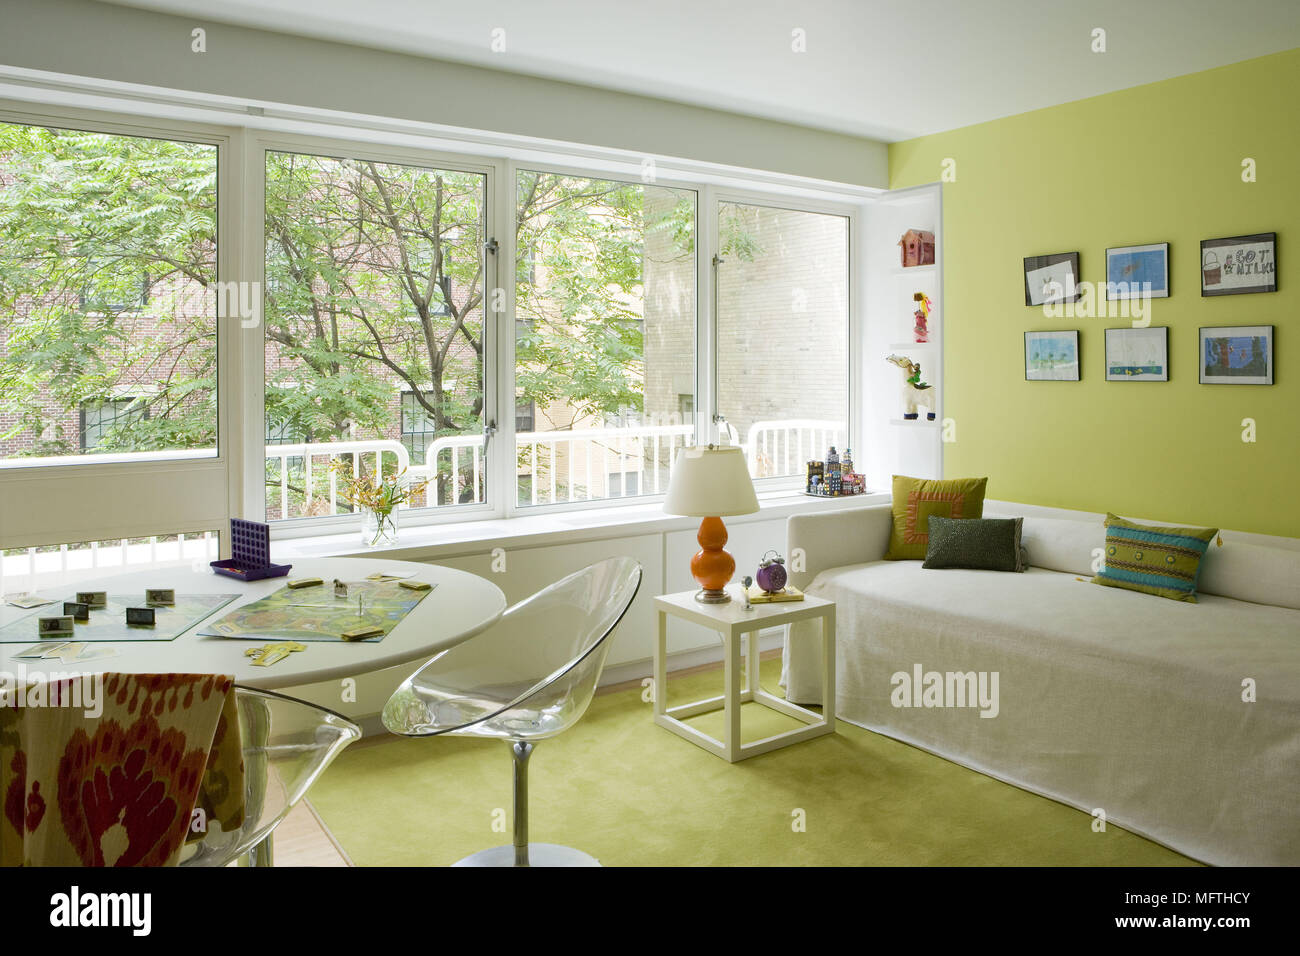 Living Room Bedroom Combo Ideas, Philippe Starck Eros Dining Chair At Dining Table In Modern Sitting Yellow Stock Photo Alamy